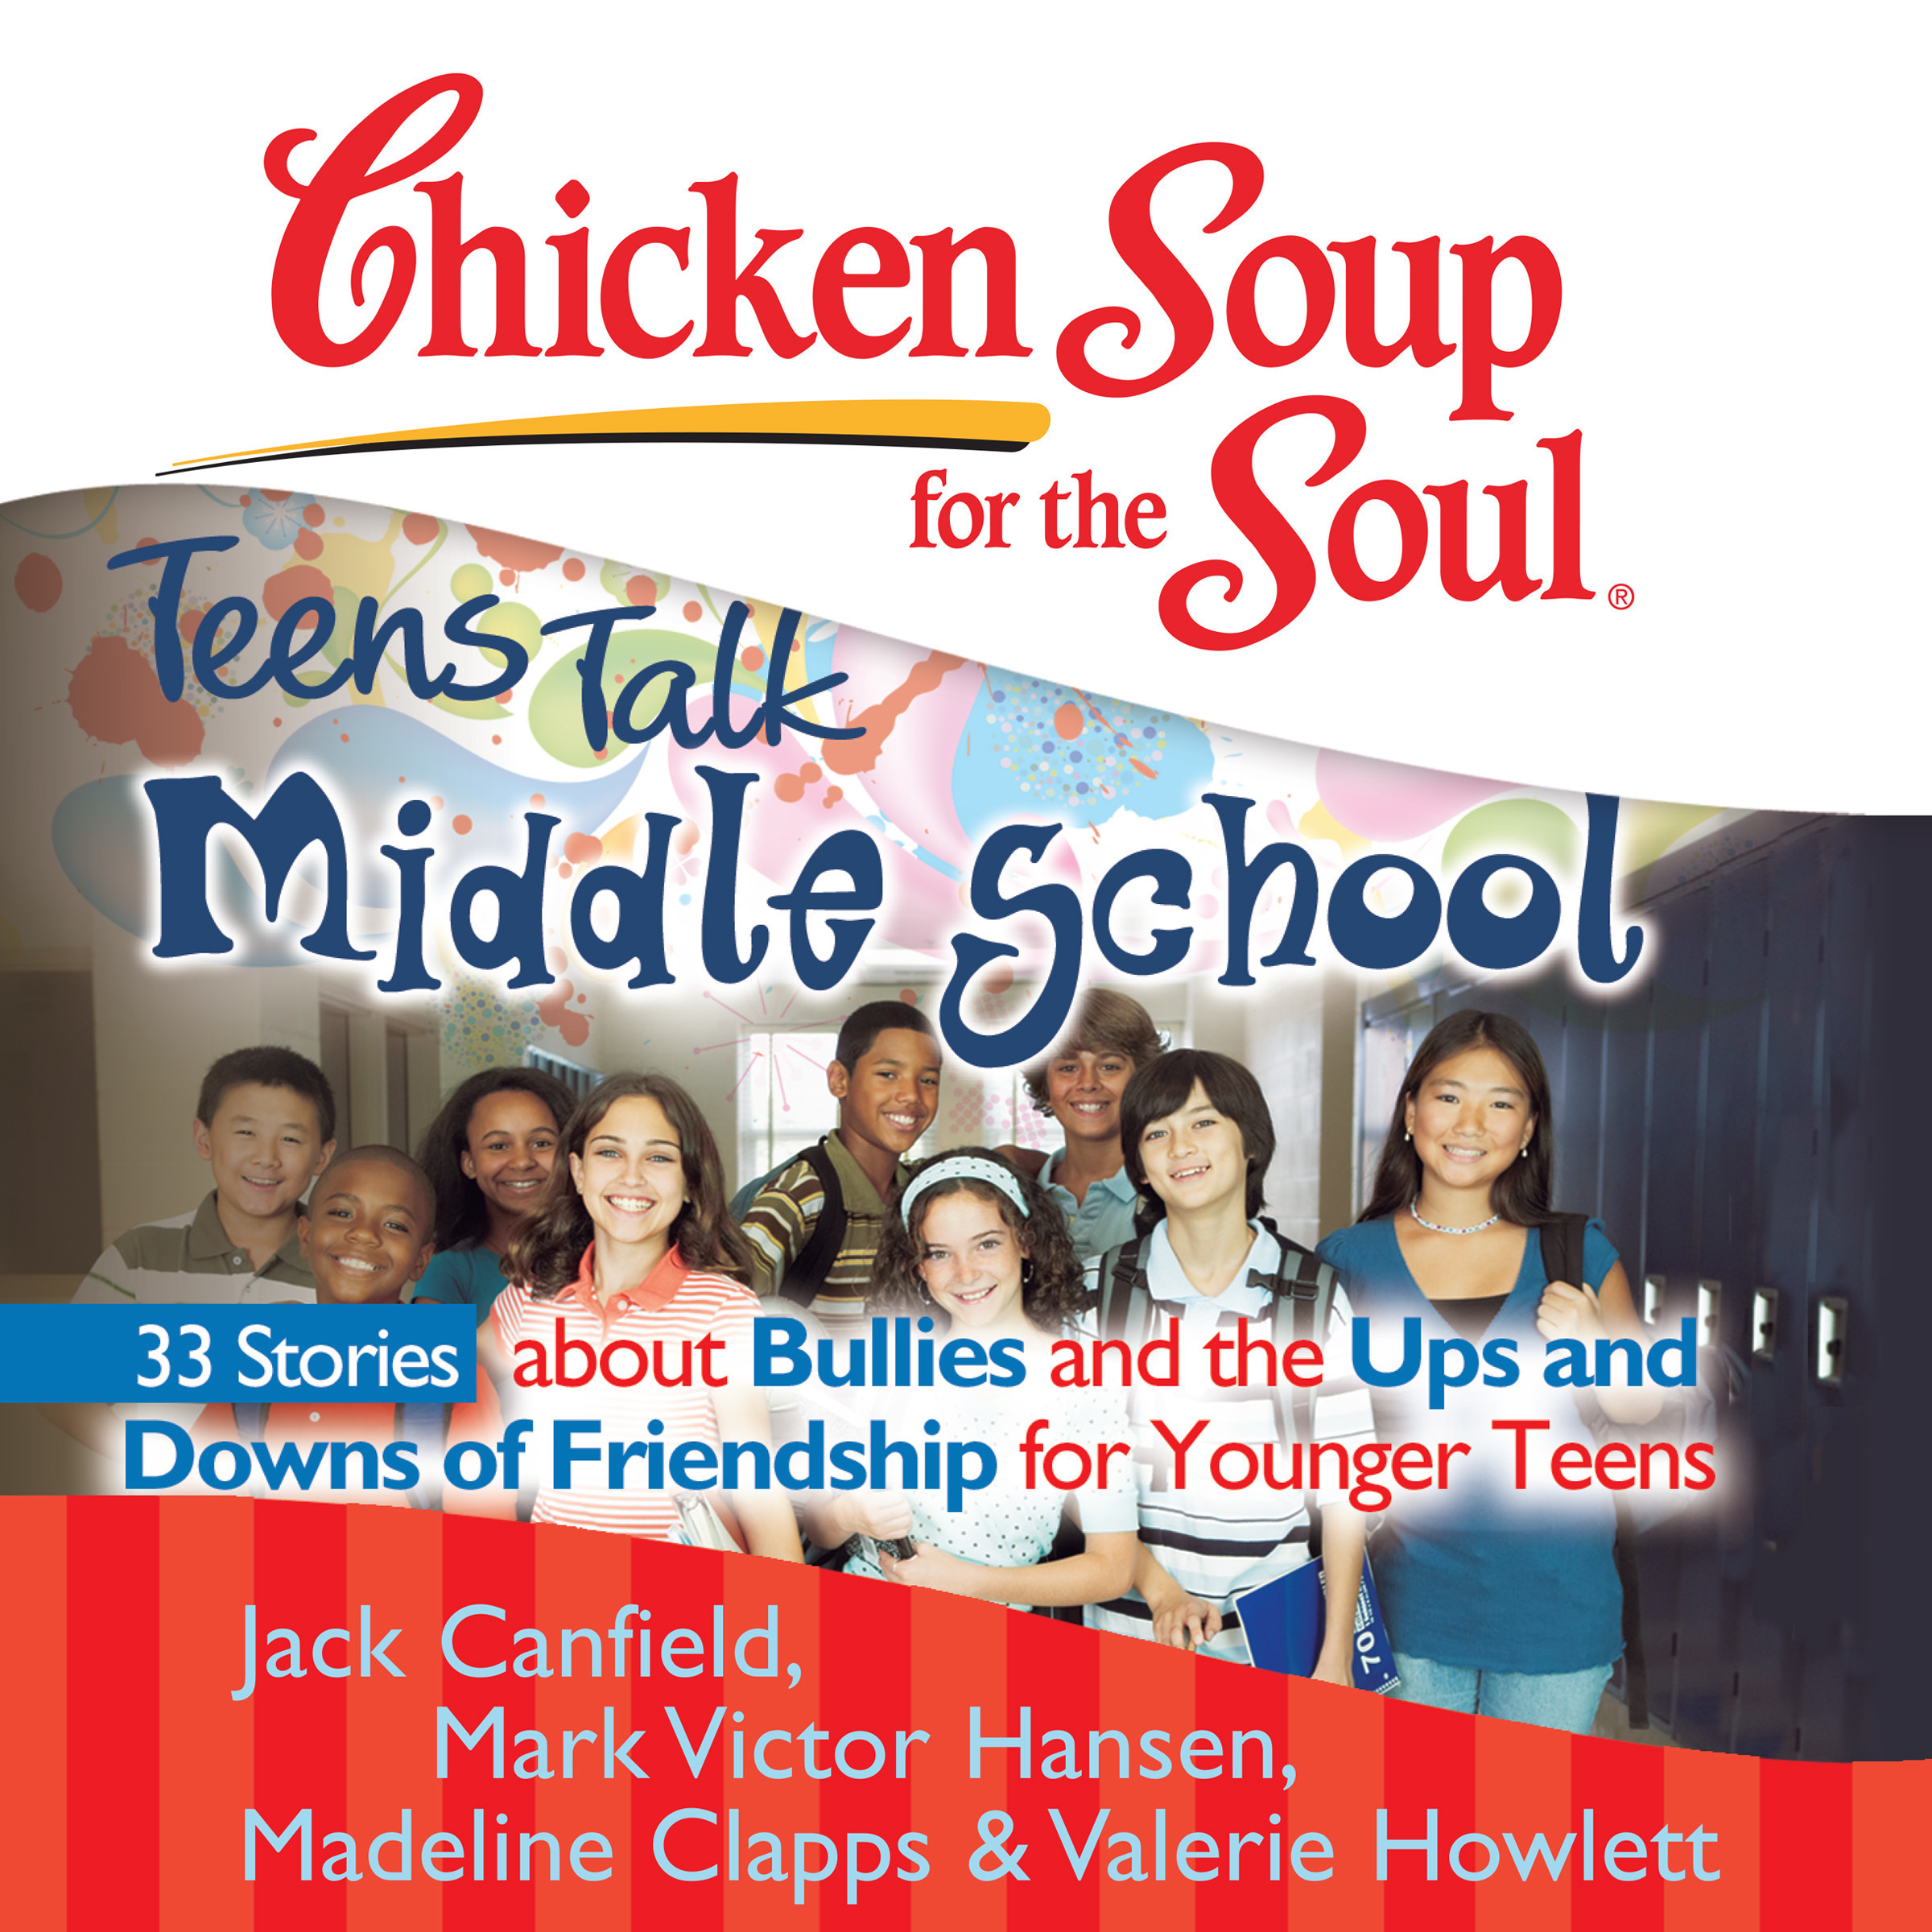 Printable Chicken Soup for the Soul: Teens Talk Middle School - 33 Stories about Bullies and the Ups and Downs of Friendship for Younger Teens Audiobook Cover Art